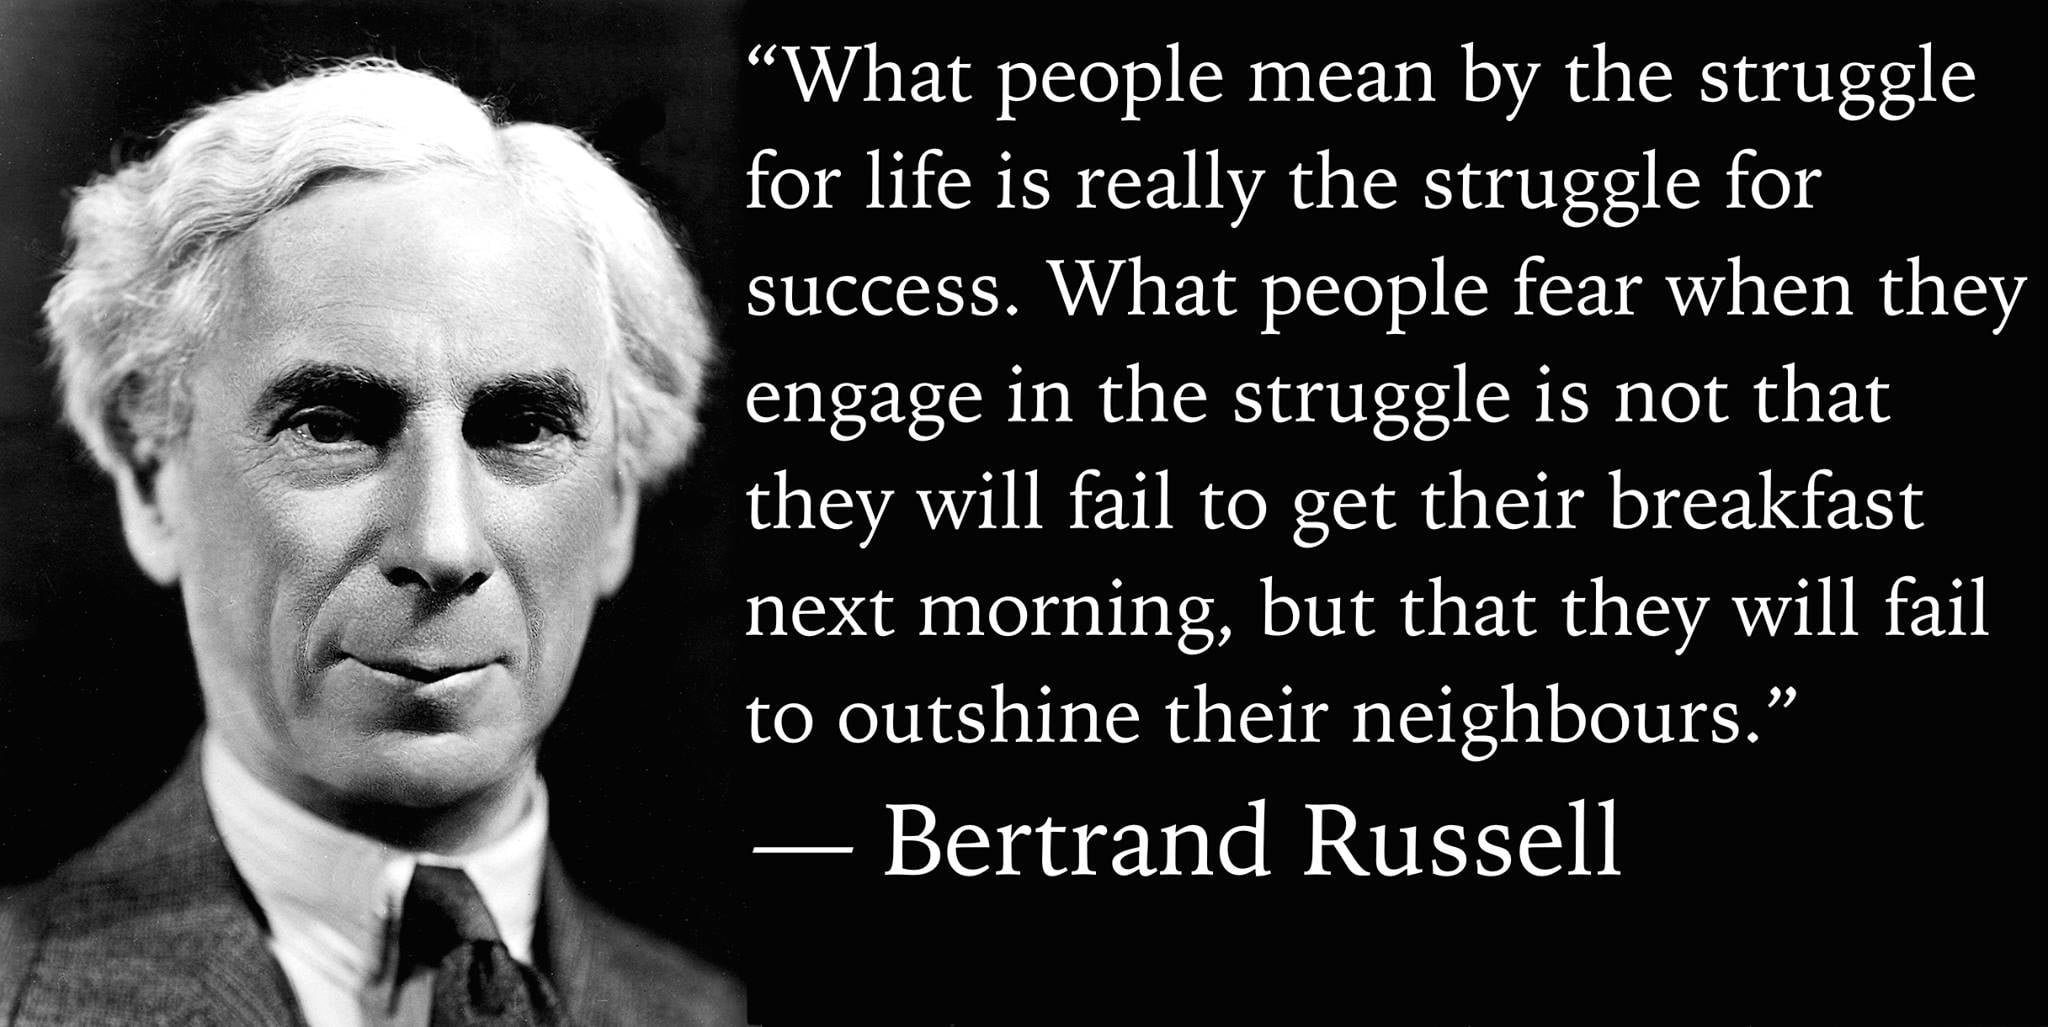 """What people mean by the struggle for life is really the struggle for success. What people fear when they engage in the struggle is not that they will fail to get their breakfast next morning, but that they will fail to outshine their neighbours."" — Bertrand Russell, The Conquest of Happiness (1930)"